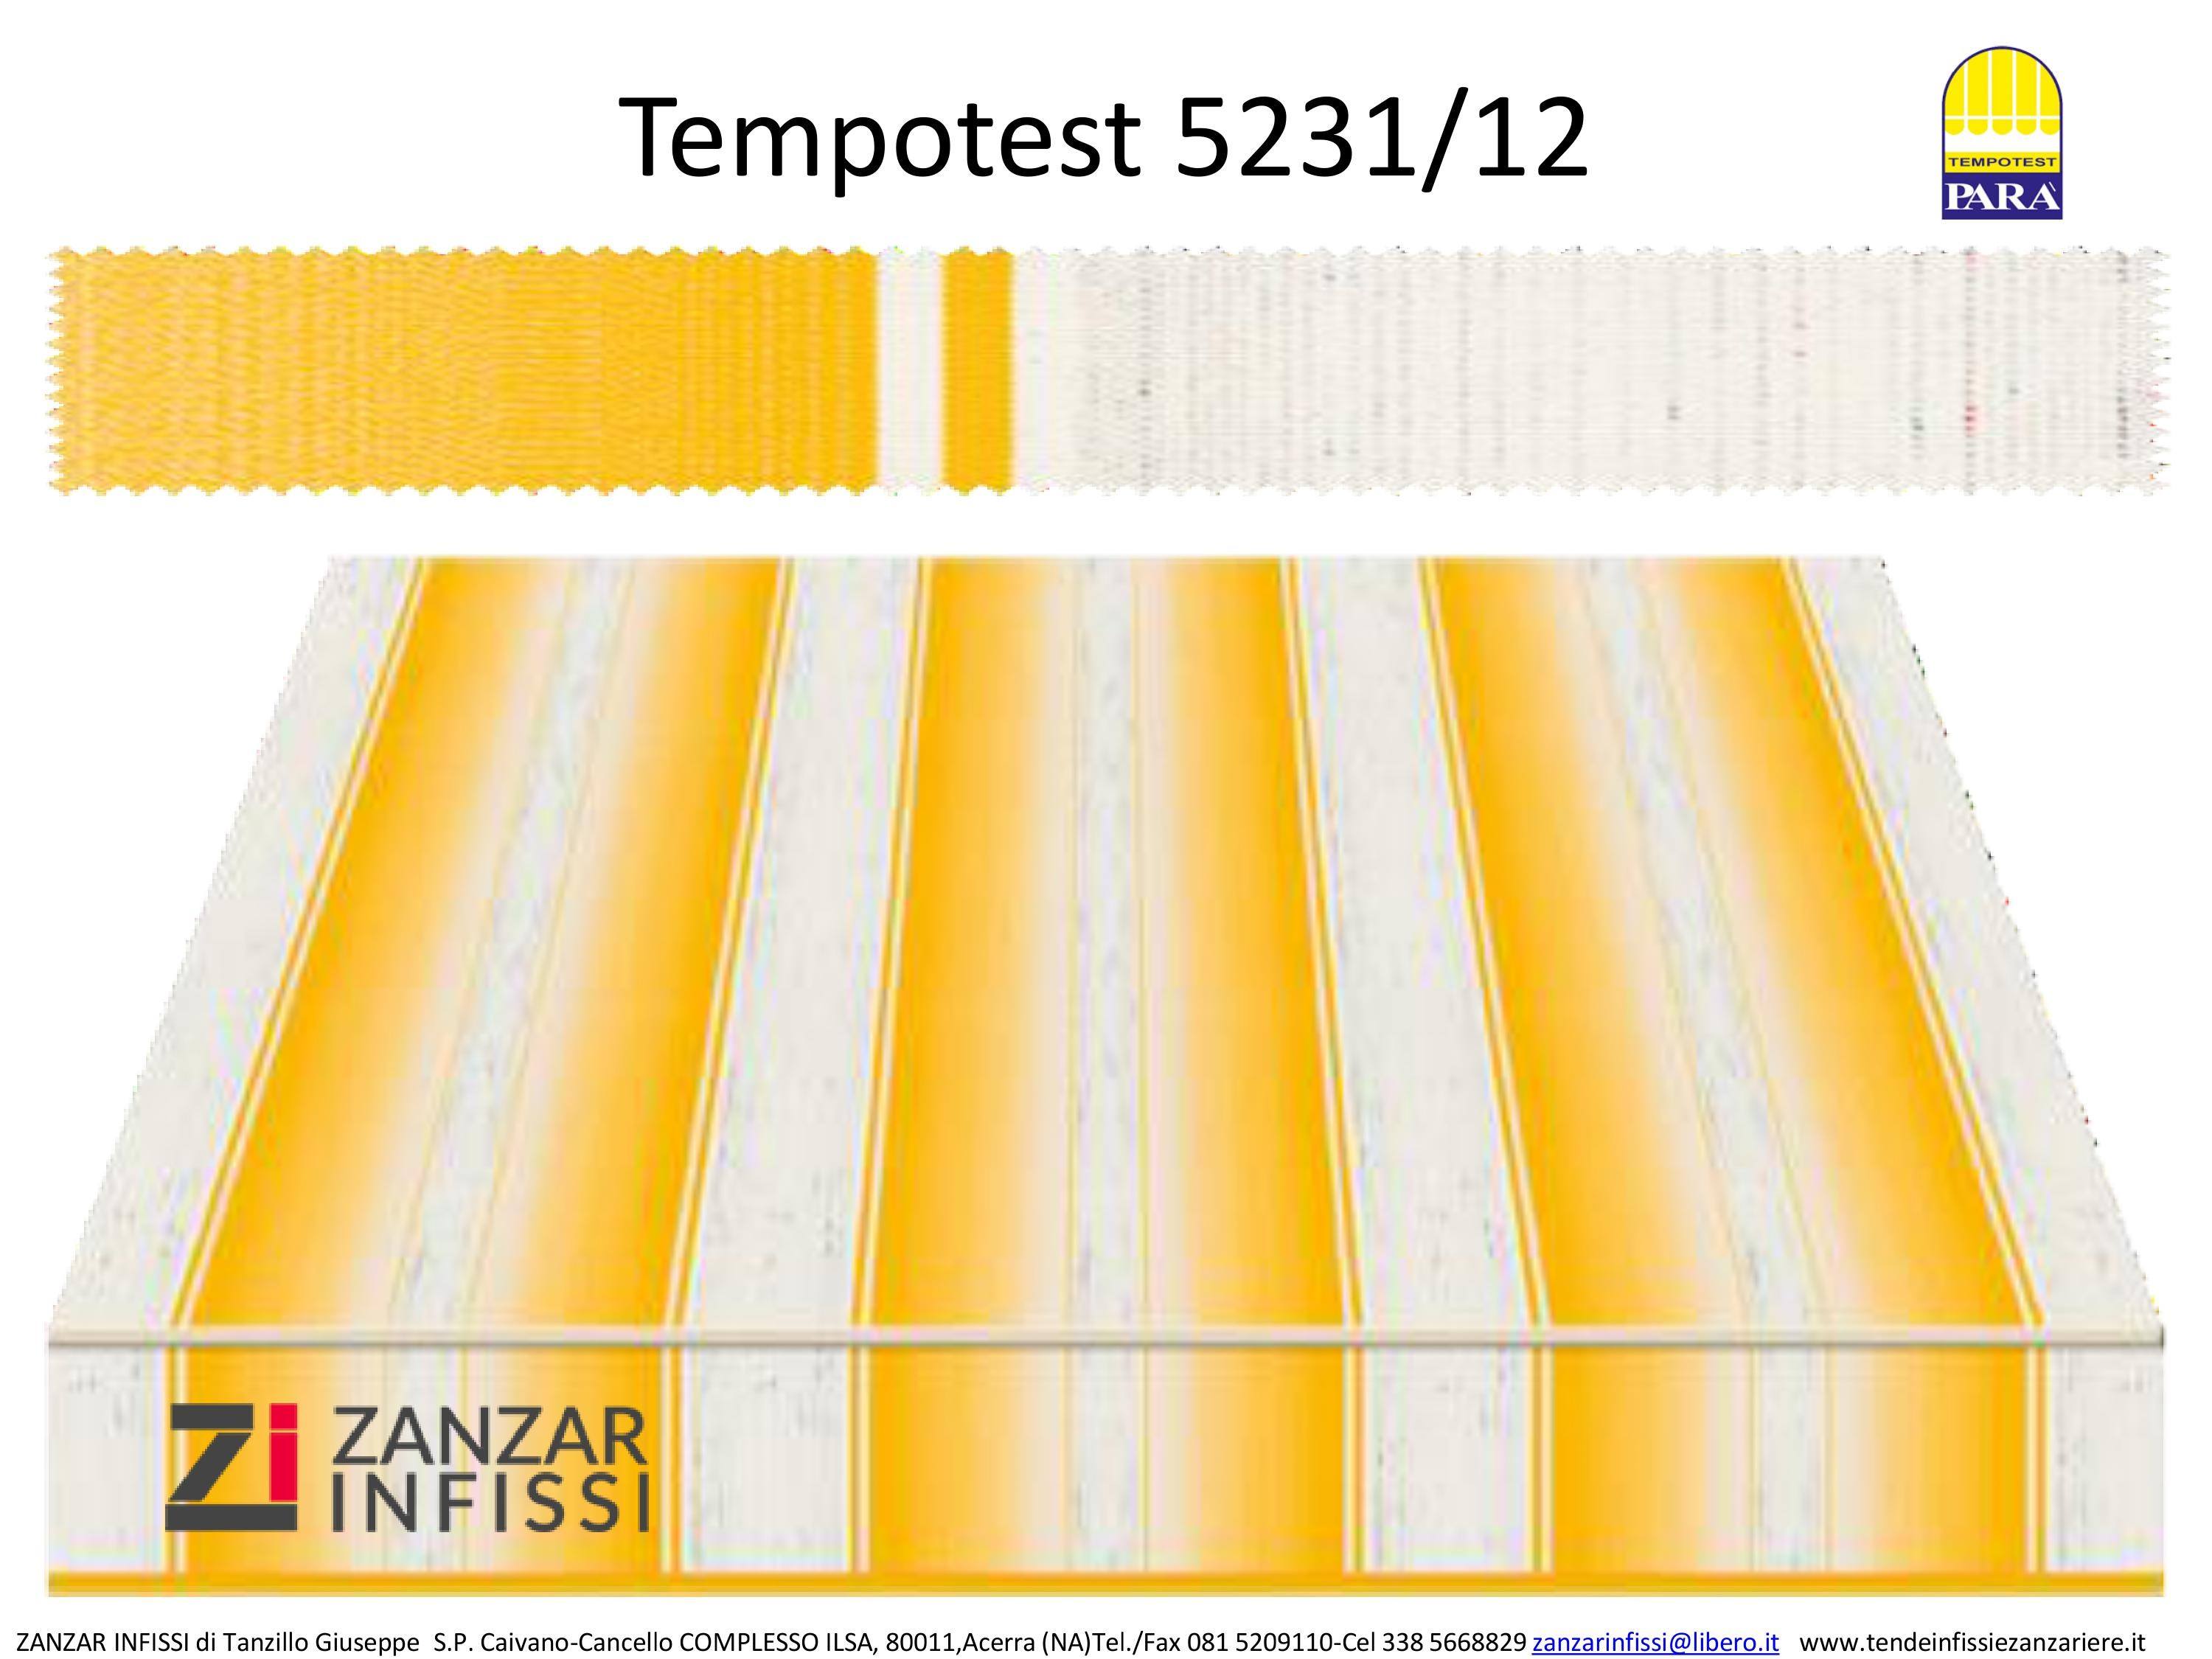 Tempotest 5347/12